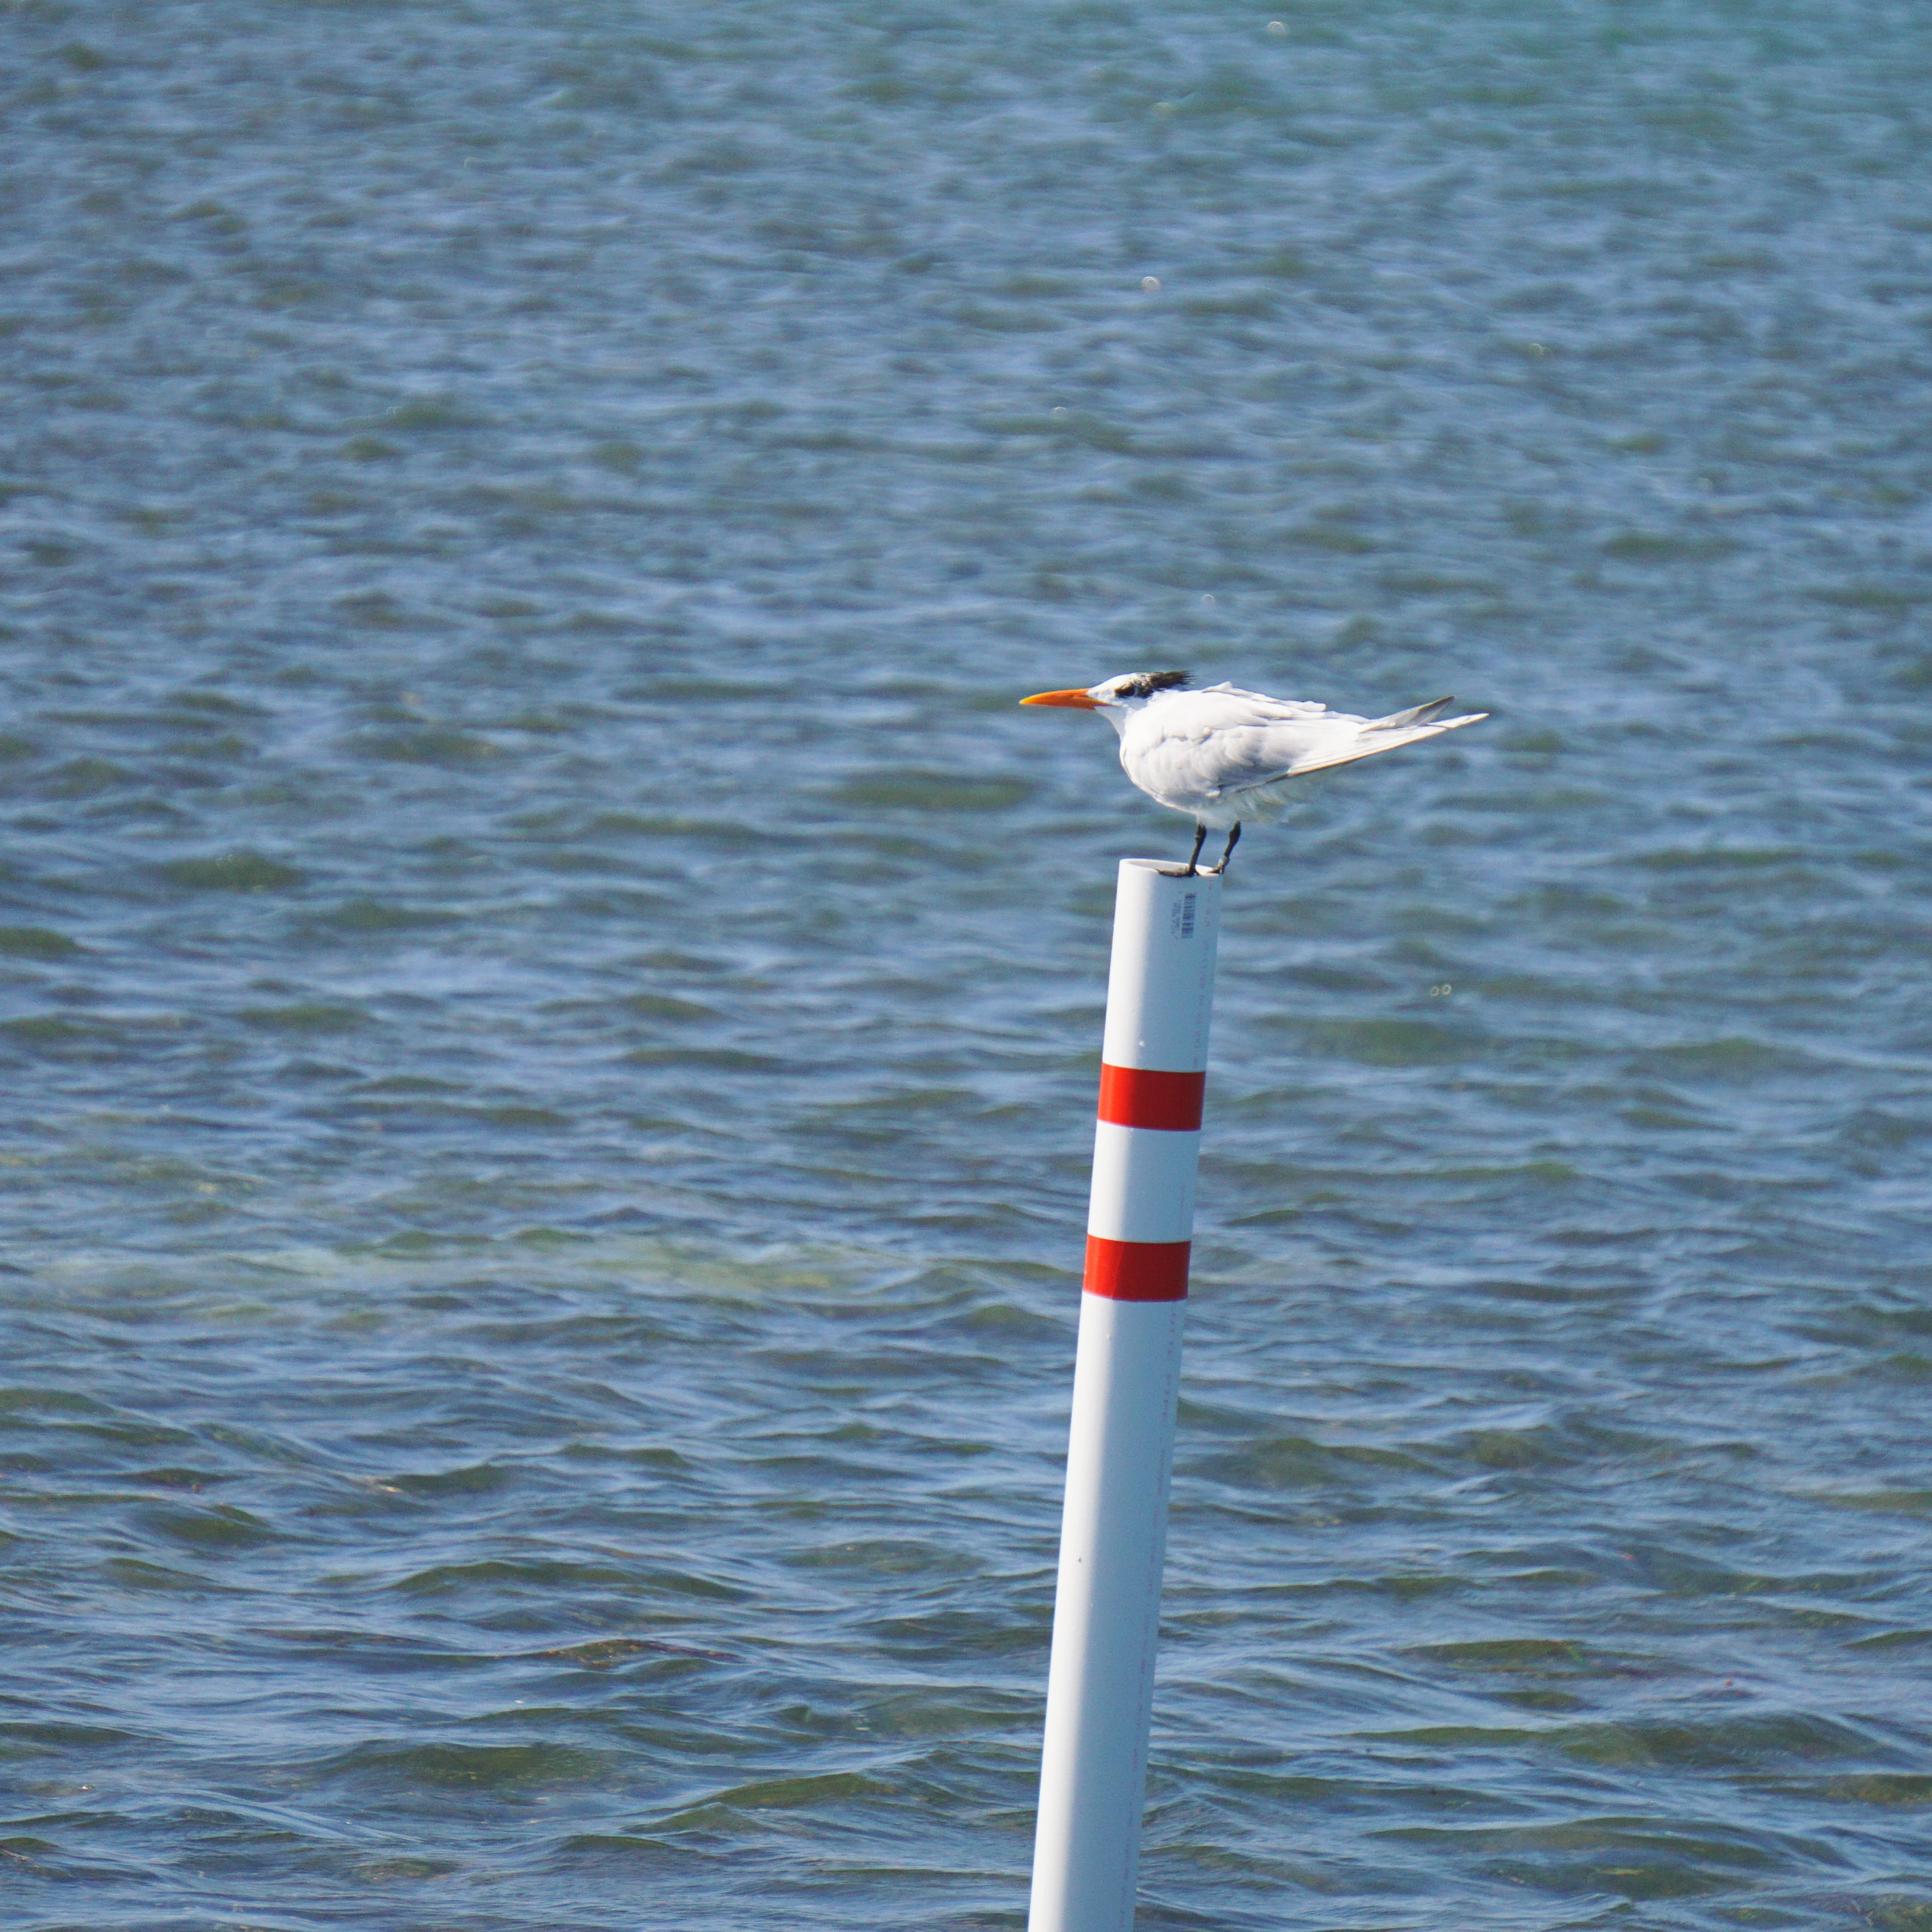 Royal tern bird perched on a white and red pole near Key West